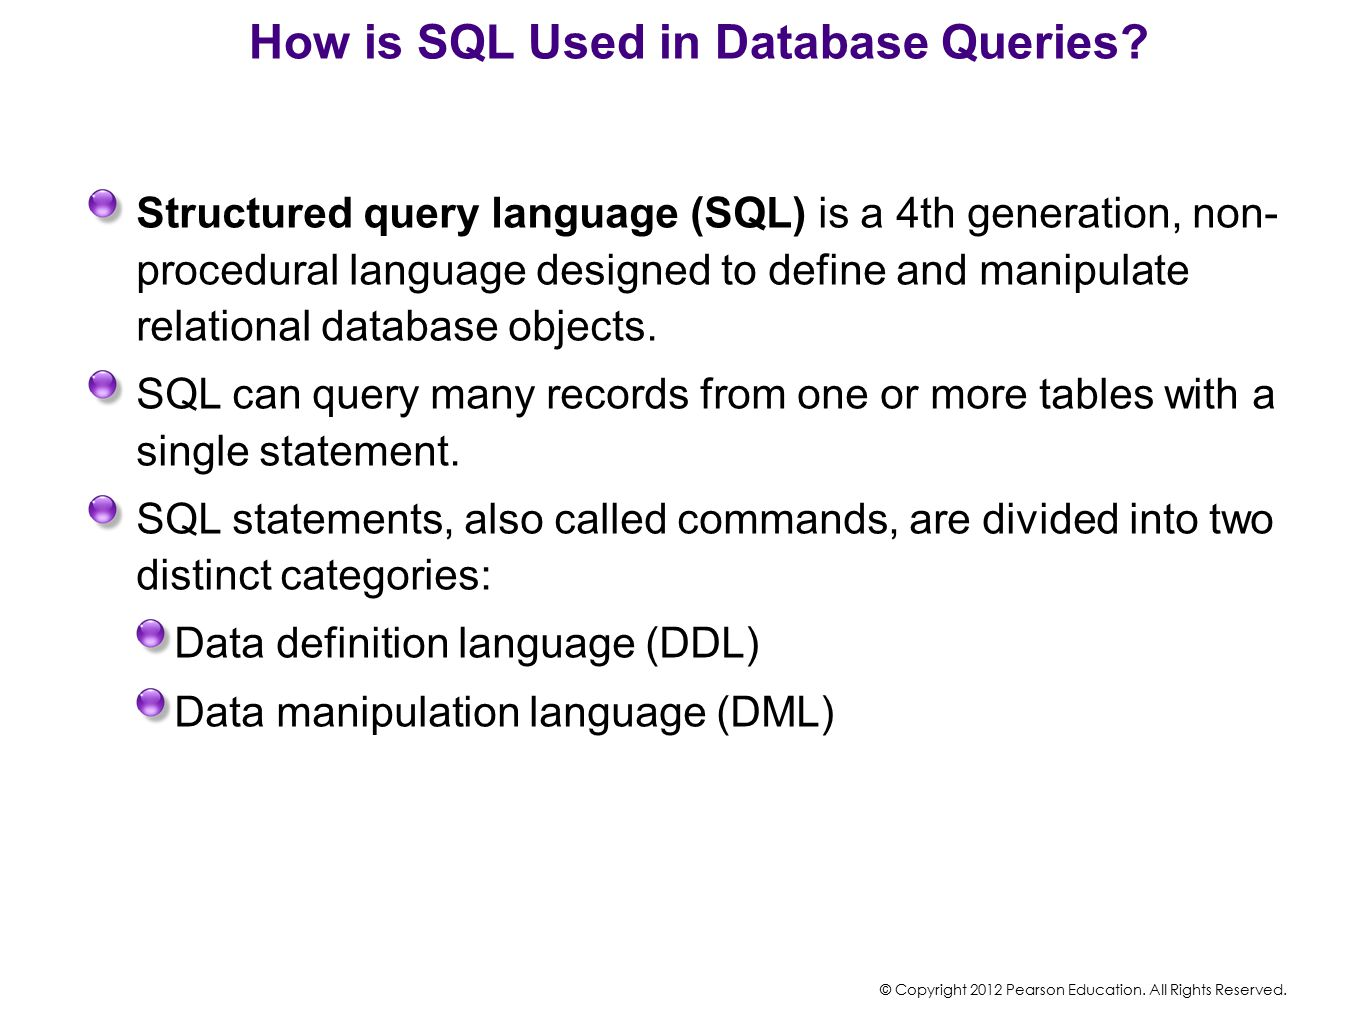 How is SQL Used in Database Queries